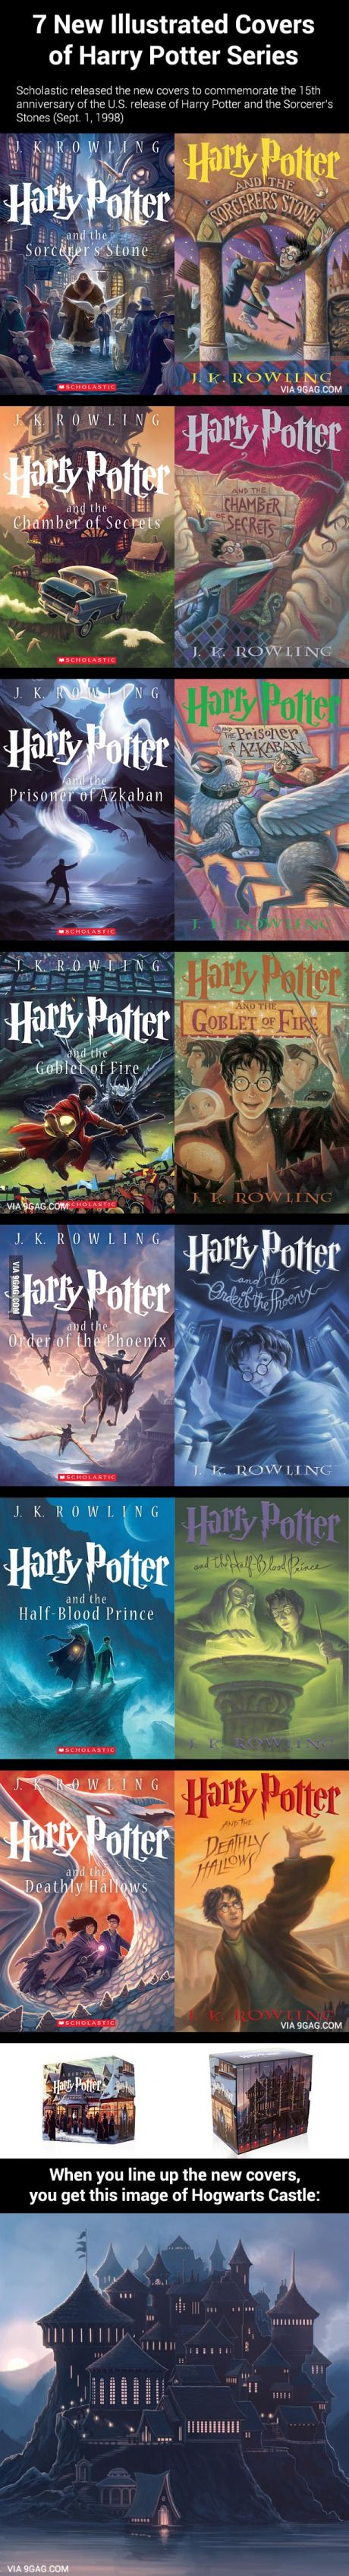 7 New Illustrated Covers of Harry Potter Series. I so badly want this!